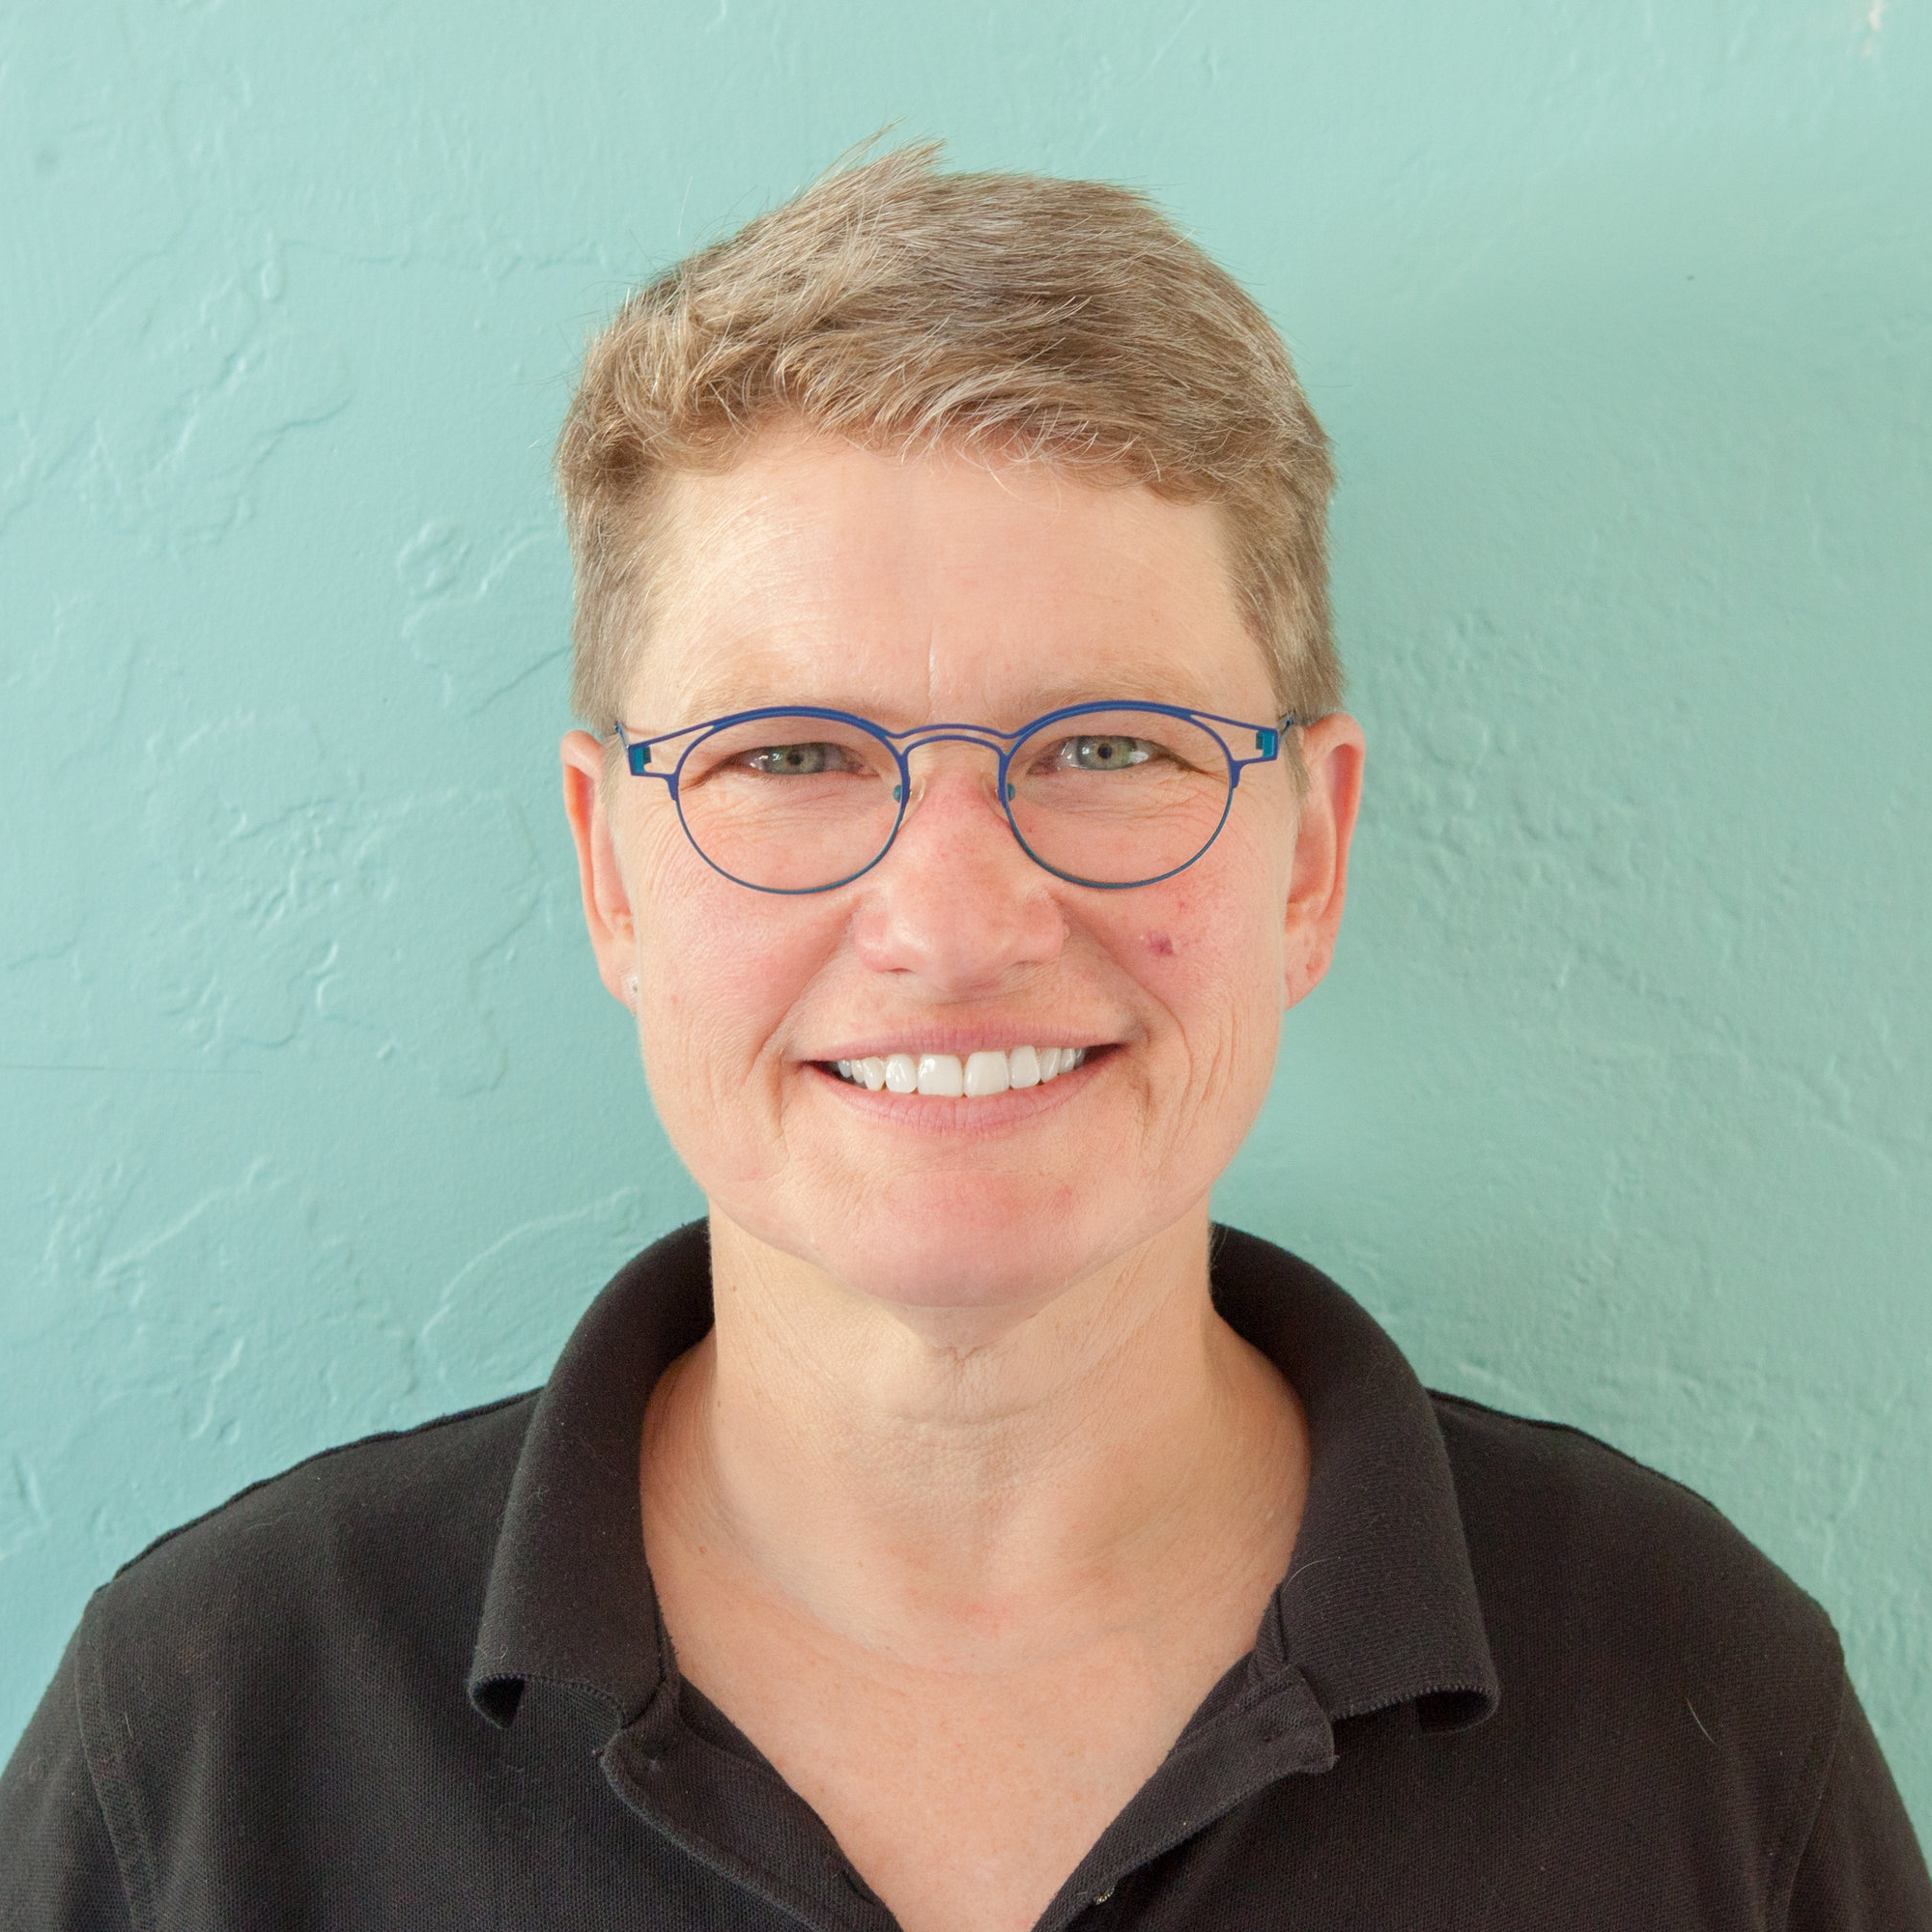 I'm Amy, the owner of AmyWorks. - I started the company in 2010, because I wanted to do great remodeling work for our community and create good jobs for my employees.I have 30 years of experience in the remodeling and home repair industry. I am an graduate of the SBA Emerging Leaders Program, current member of the GSBA, a past participant of the UW Foster School of Business Small Business Growth Collaborative Cohort and carry the NAHB designation of Certified Graduate Remodeler..